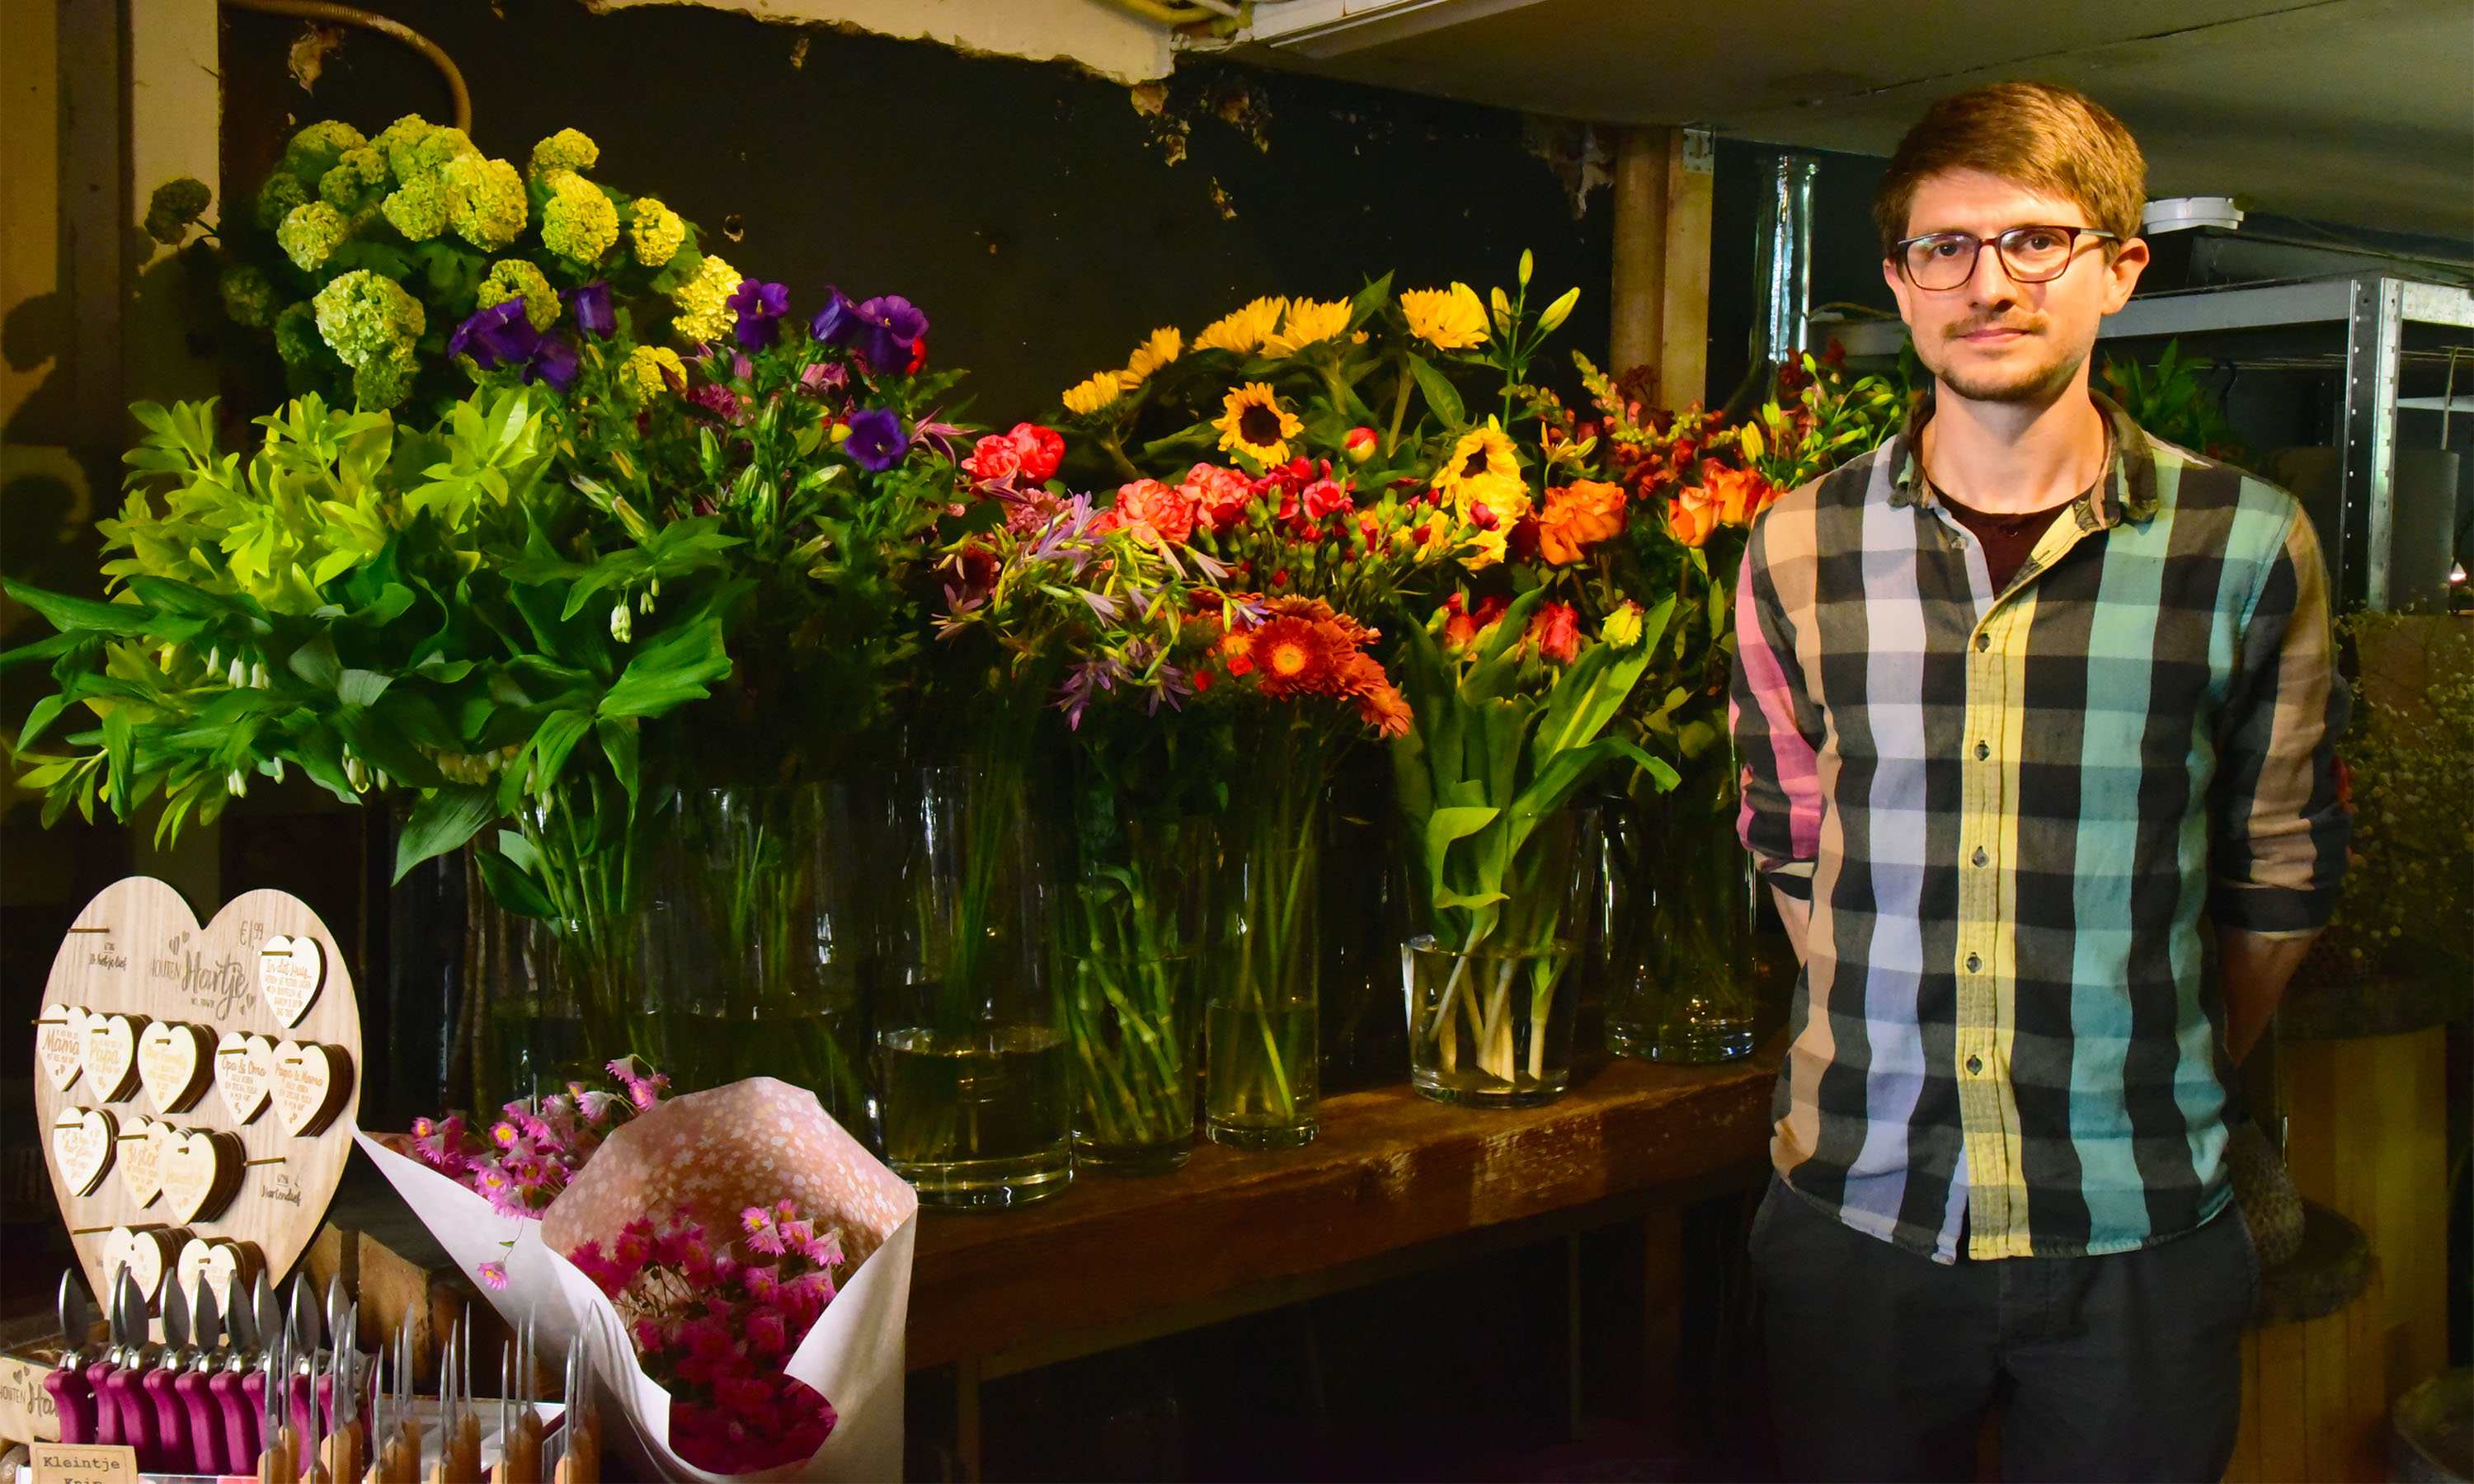 The Dutch florist Dennis Lanzaat poses for a photo shooting at his flower shop in Amsterdam